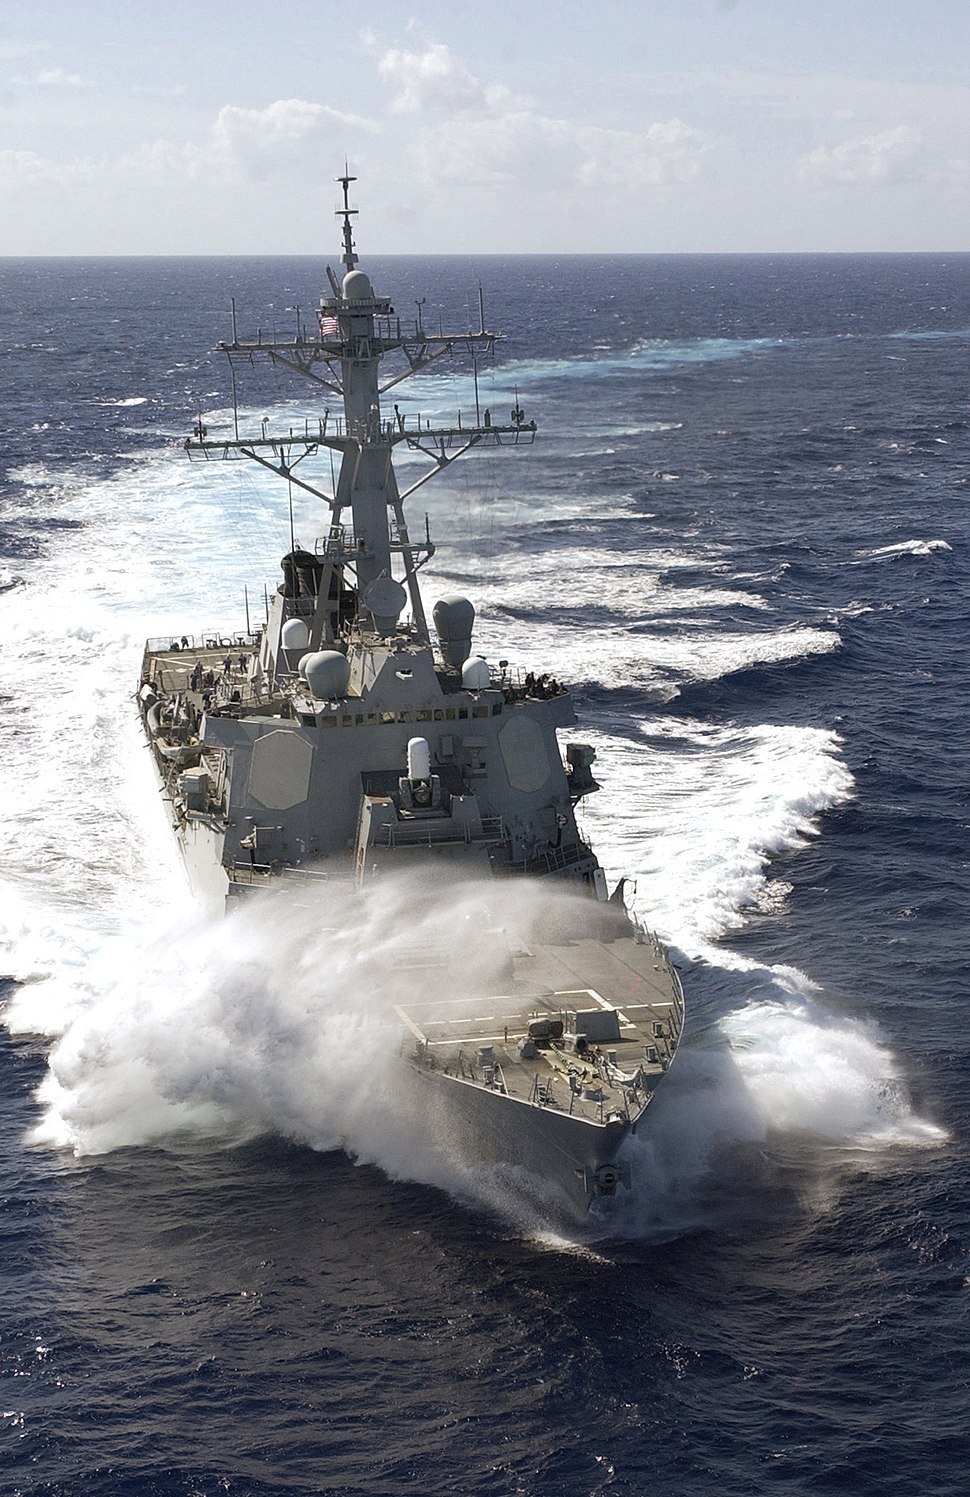 A wave breaks over the bow of the destroyer USS Russell (DDG 59) as it plows through the South Pacific Ocean on 070209-N-HX866-007